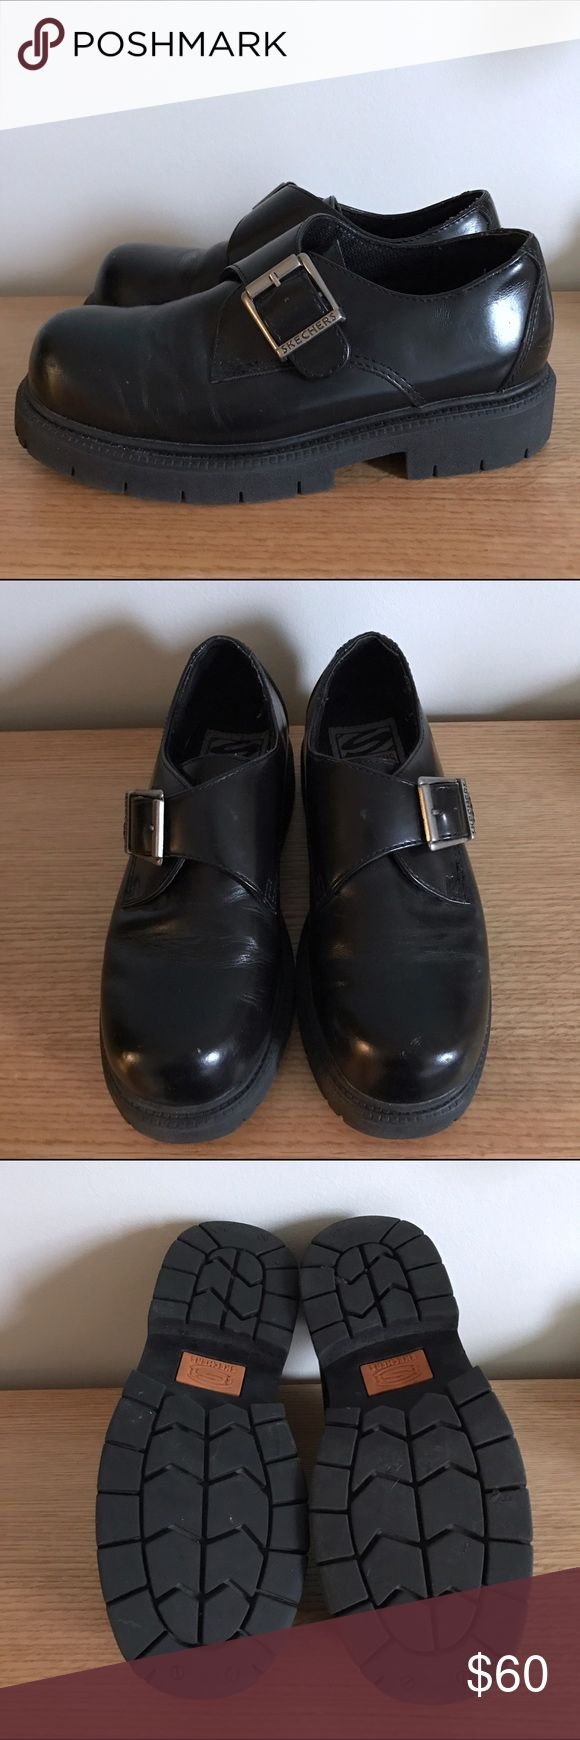 Skechers chunky buckle oxfords Brandy for exposure only. Vintage Skechers buckle monk strap oxfords. Women's size 8. Creasing on the toes but in excellent condition. / check out my closet and bundle to save! Open to reasonable offers Brandy Melville Shoes Flats & Loafers